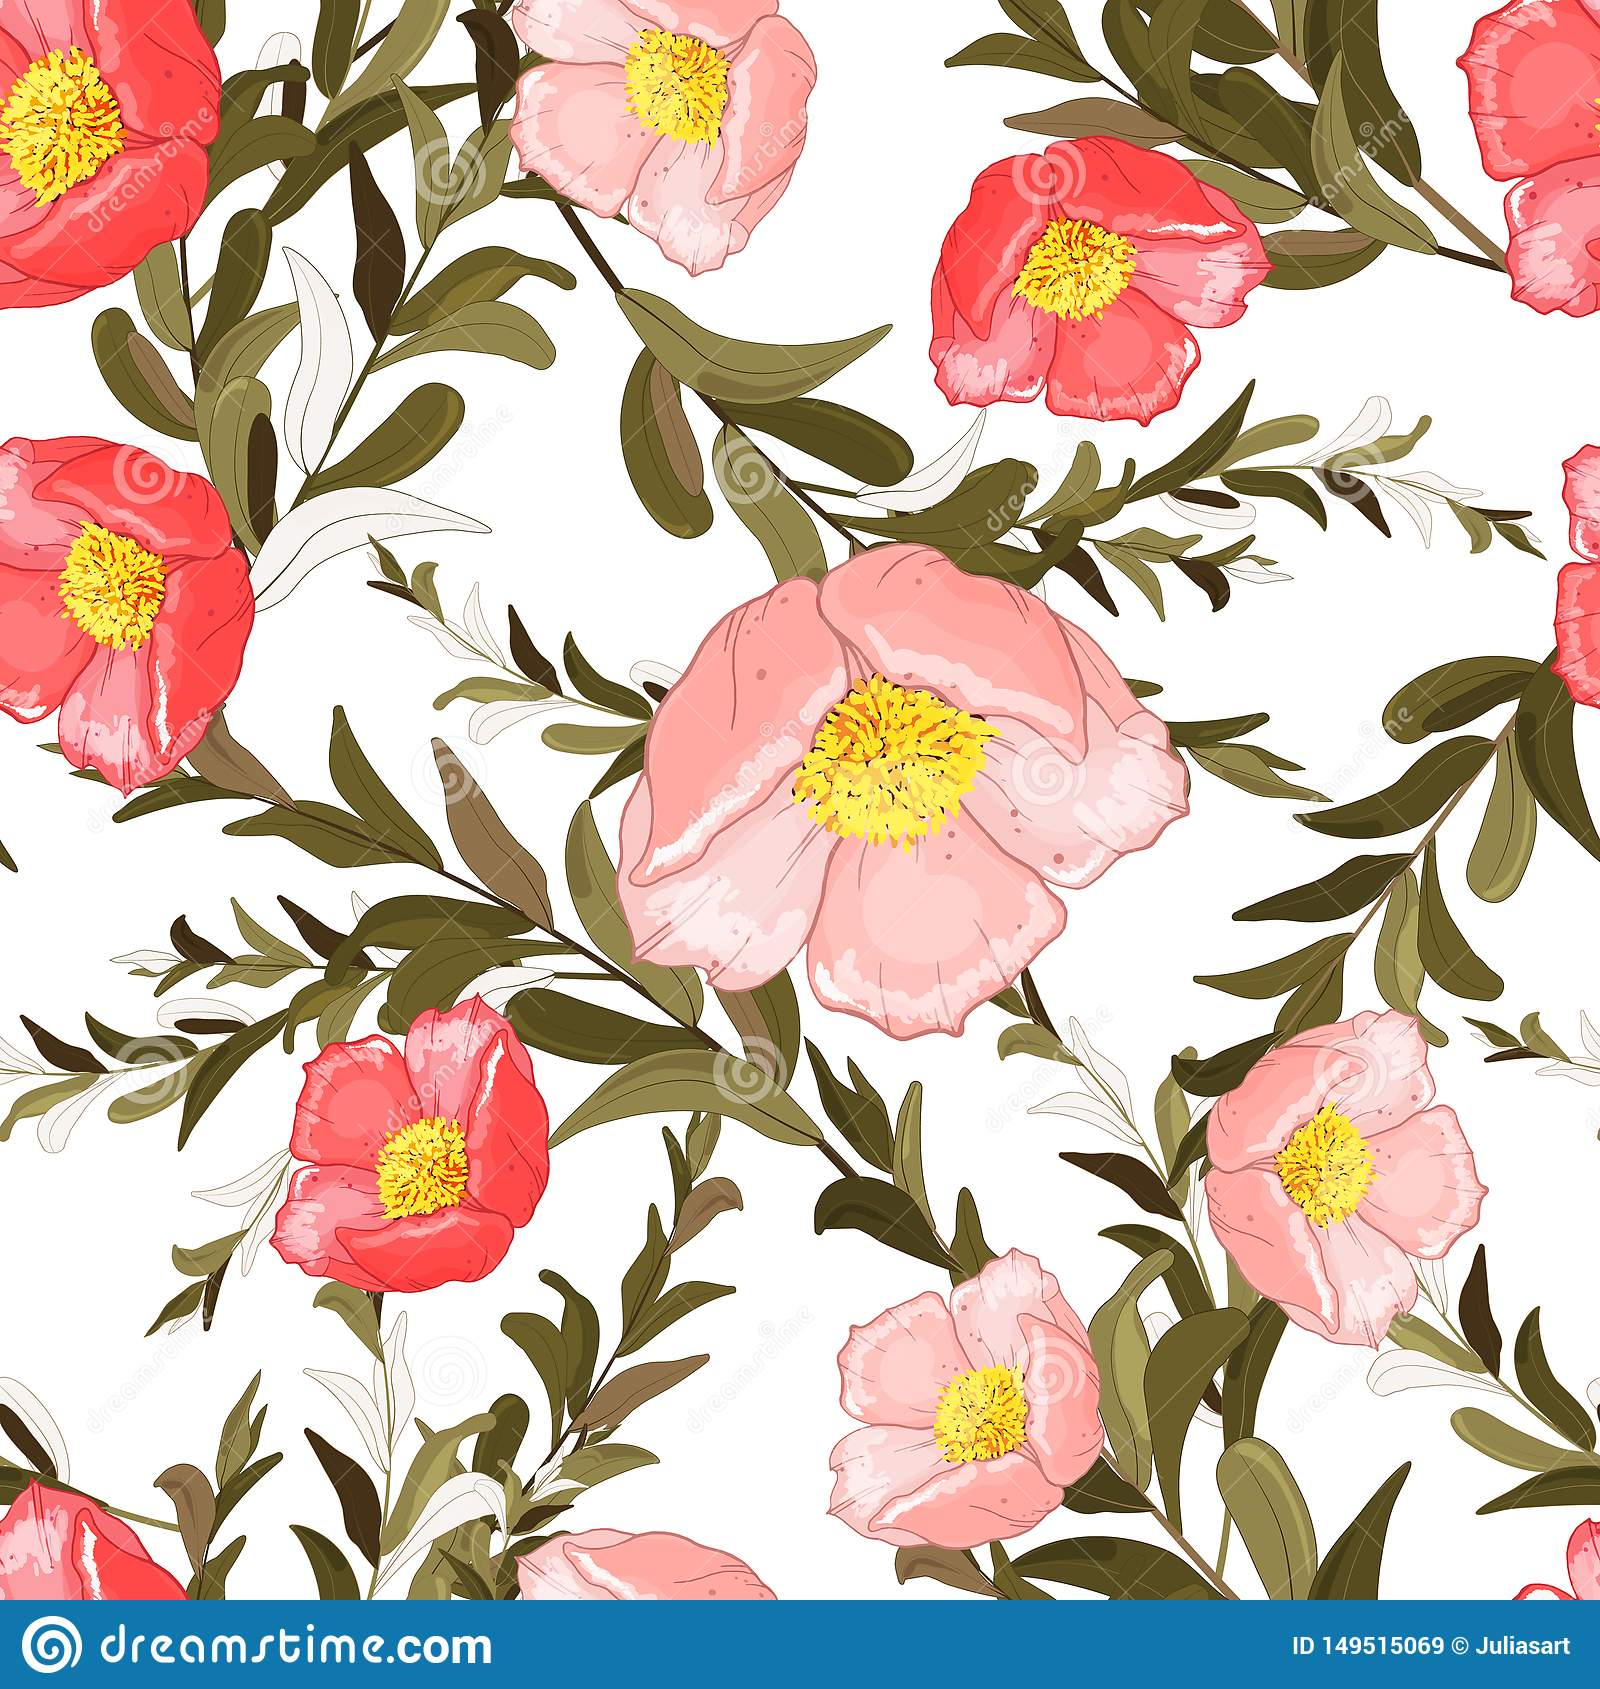 Colorful spring seamless wallpaper with cute flowers. Vector hand drawn illustration set. Retro watercolour style floral design